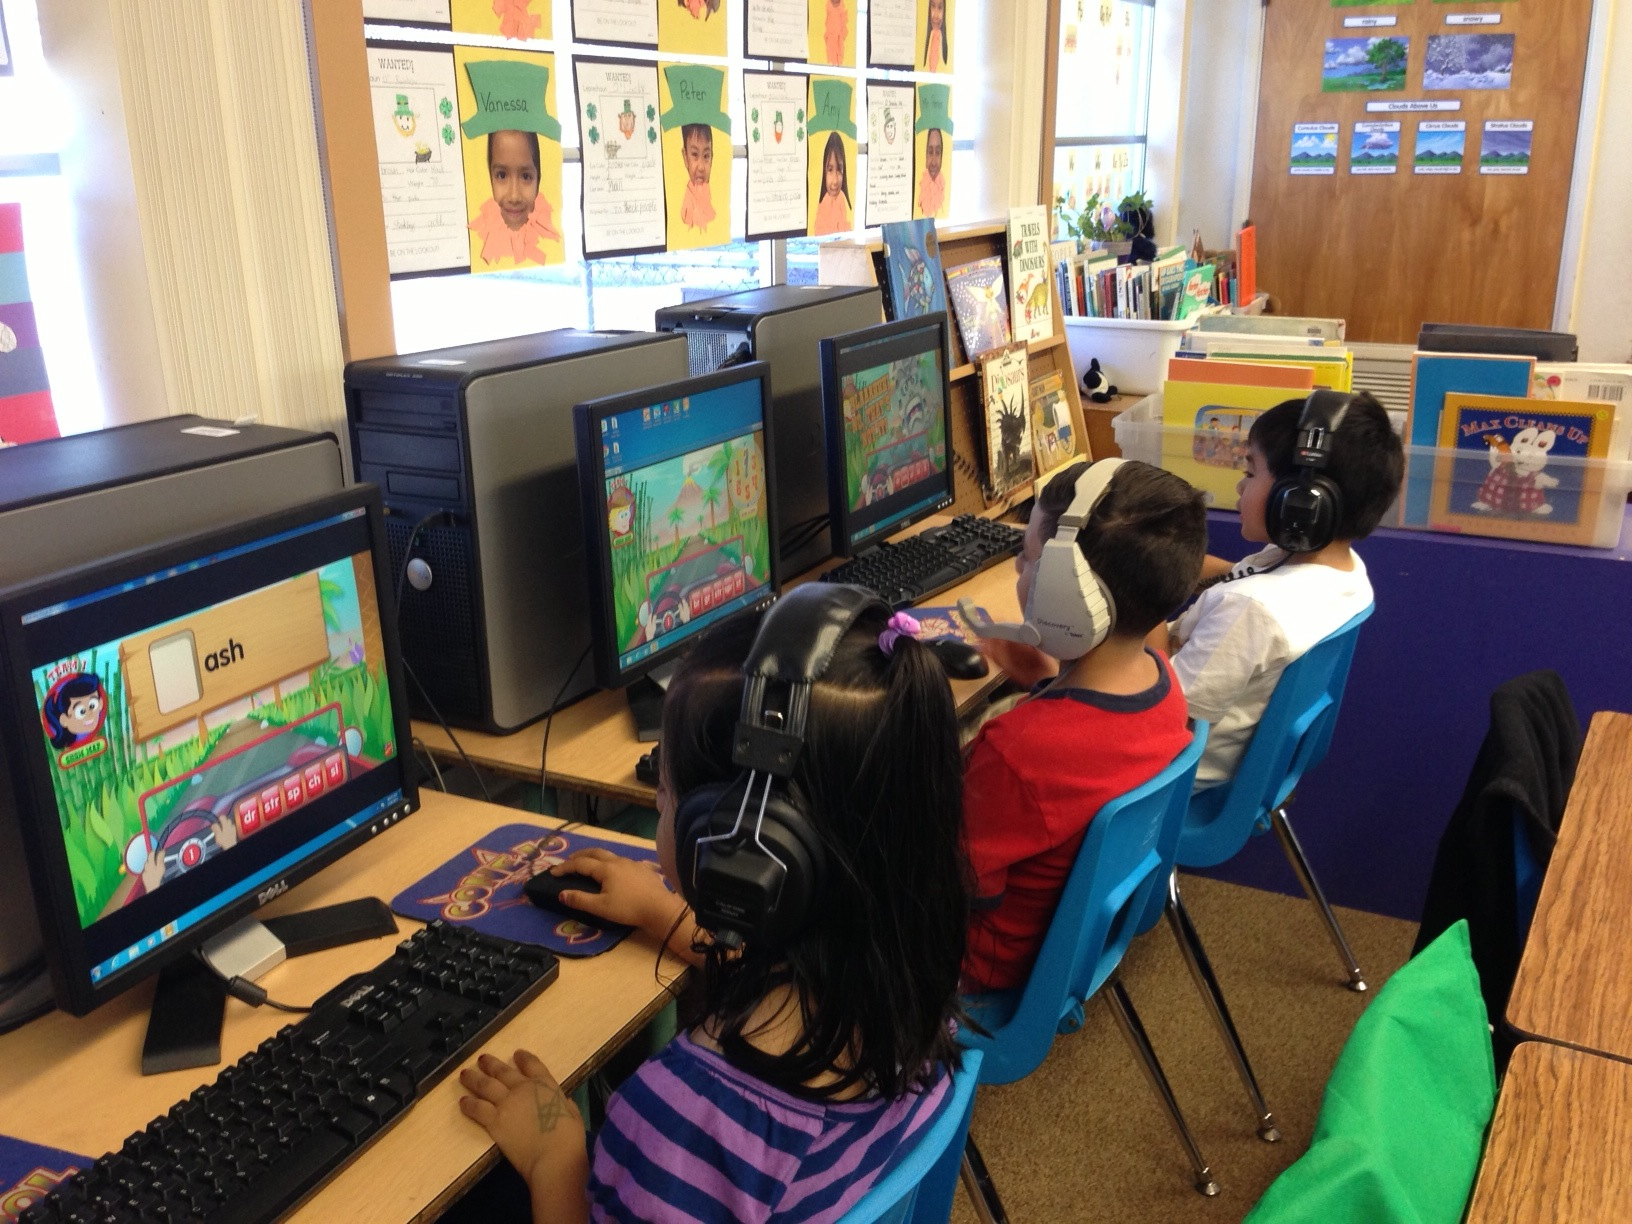 Elementary Classrooms Technology Use ~ Conejo elementary school cash classrooms